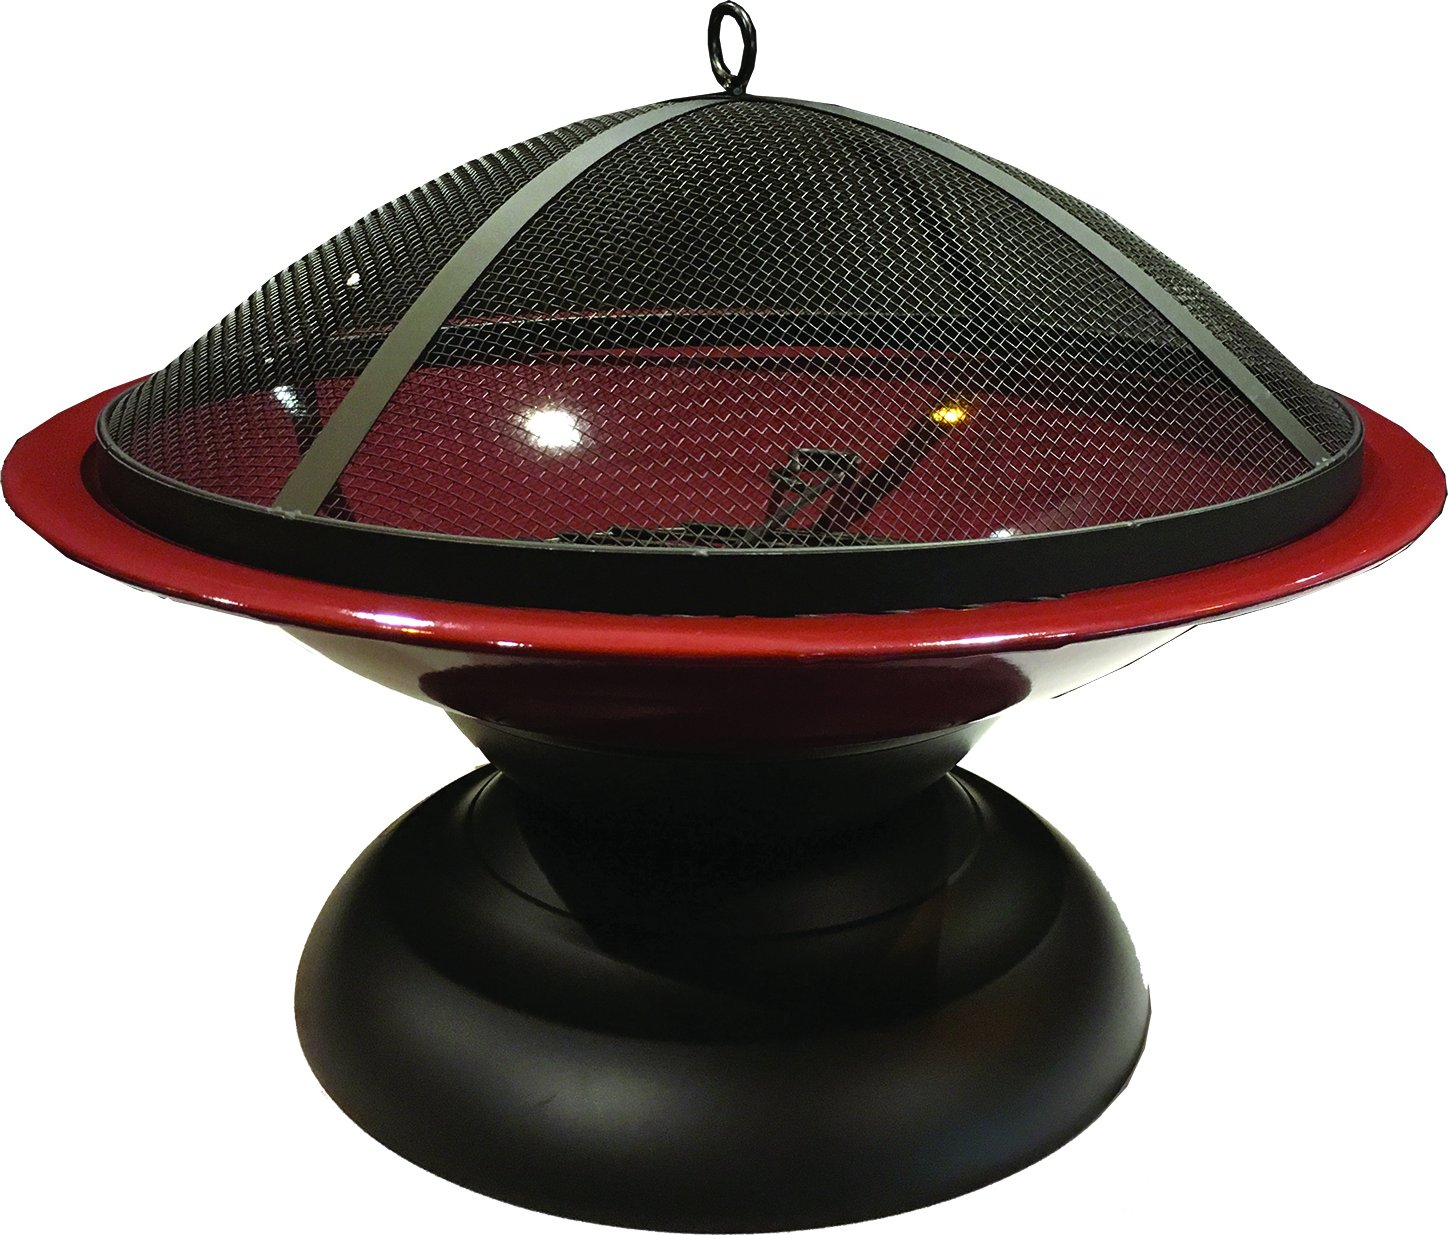 Harbor Gardens LF273AOXBL Vesta Ox Blood Red Enameled Fire Bowl/Pit, Powder Coated Steel - Heat-resistant, powder coated Steel bowl Mesh fire screen with high temperature paint Screen Lift tool and wood grate included - patio, outdoor-decor, fire-pits-outdoor-fireplaces - 81KeqknF5KL -